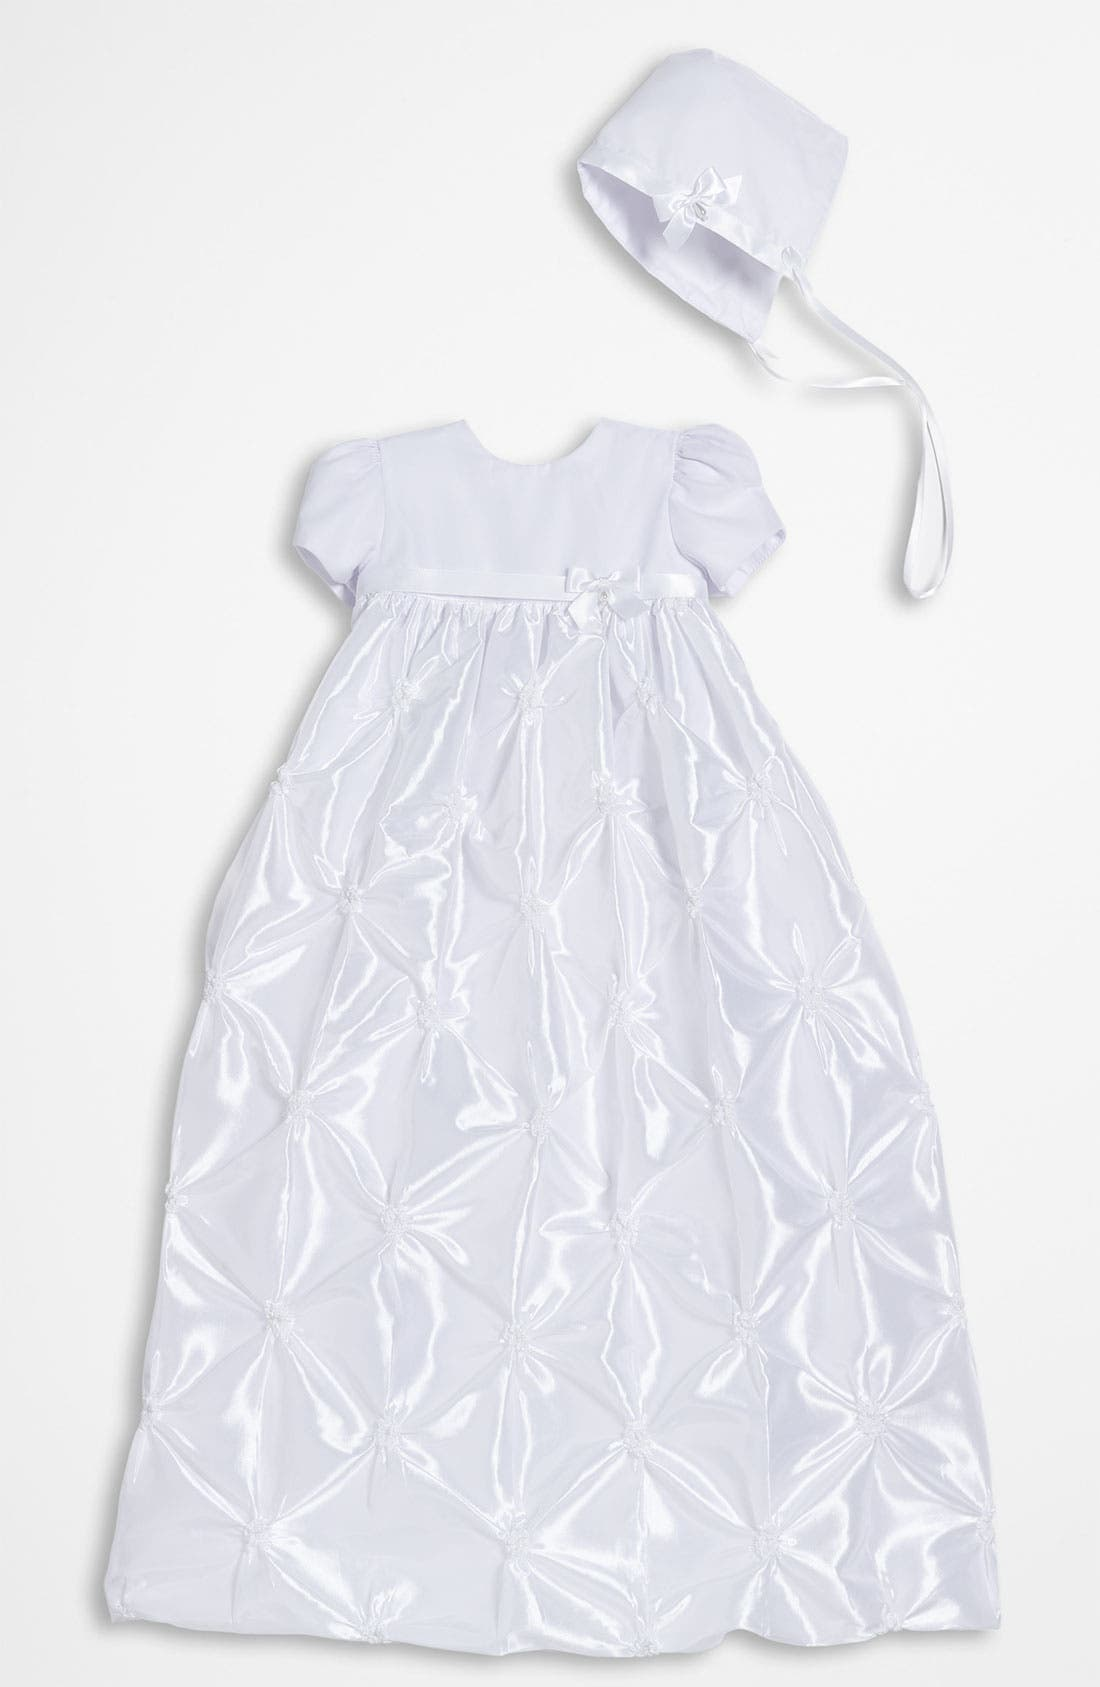 Alternate Image 1 Selected - Little Things Mean a Lot Taffeta Gown & Bonnet (Baby)